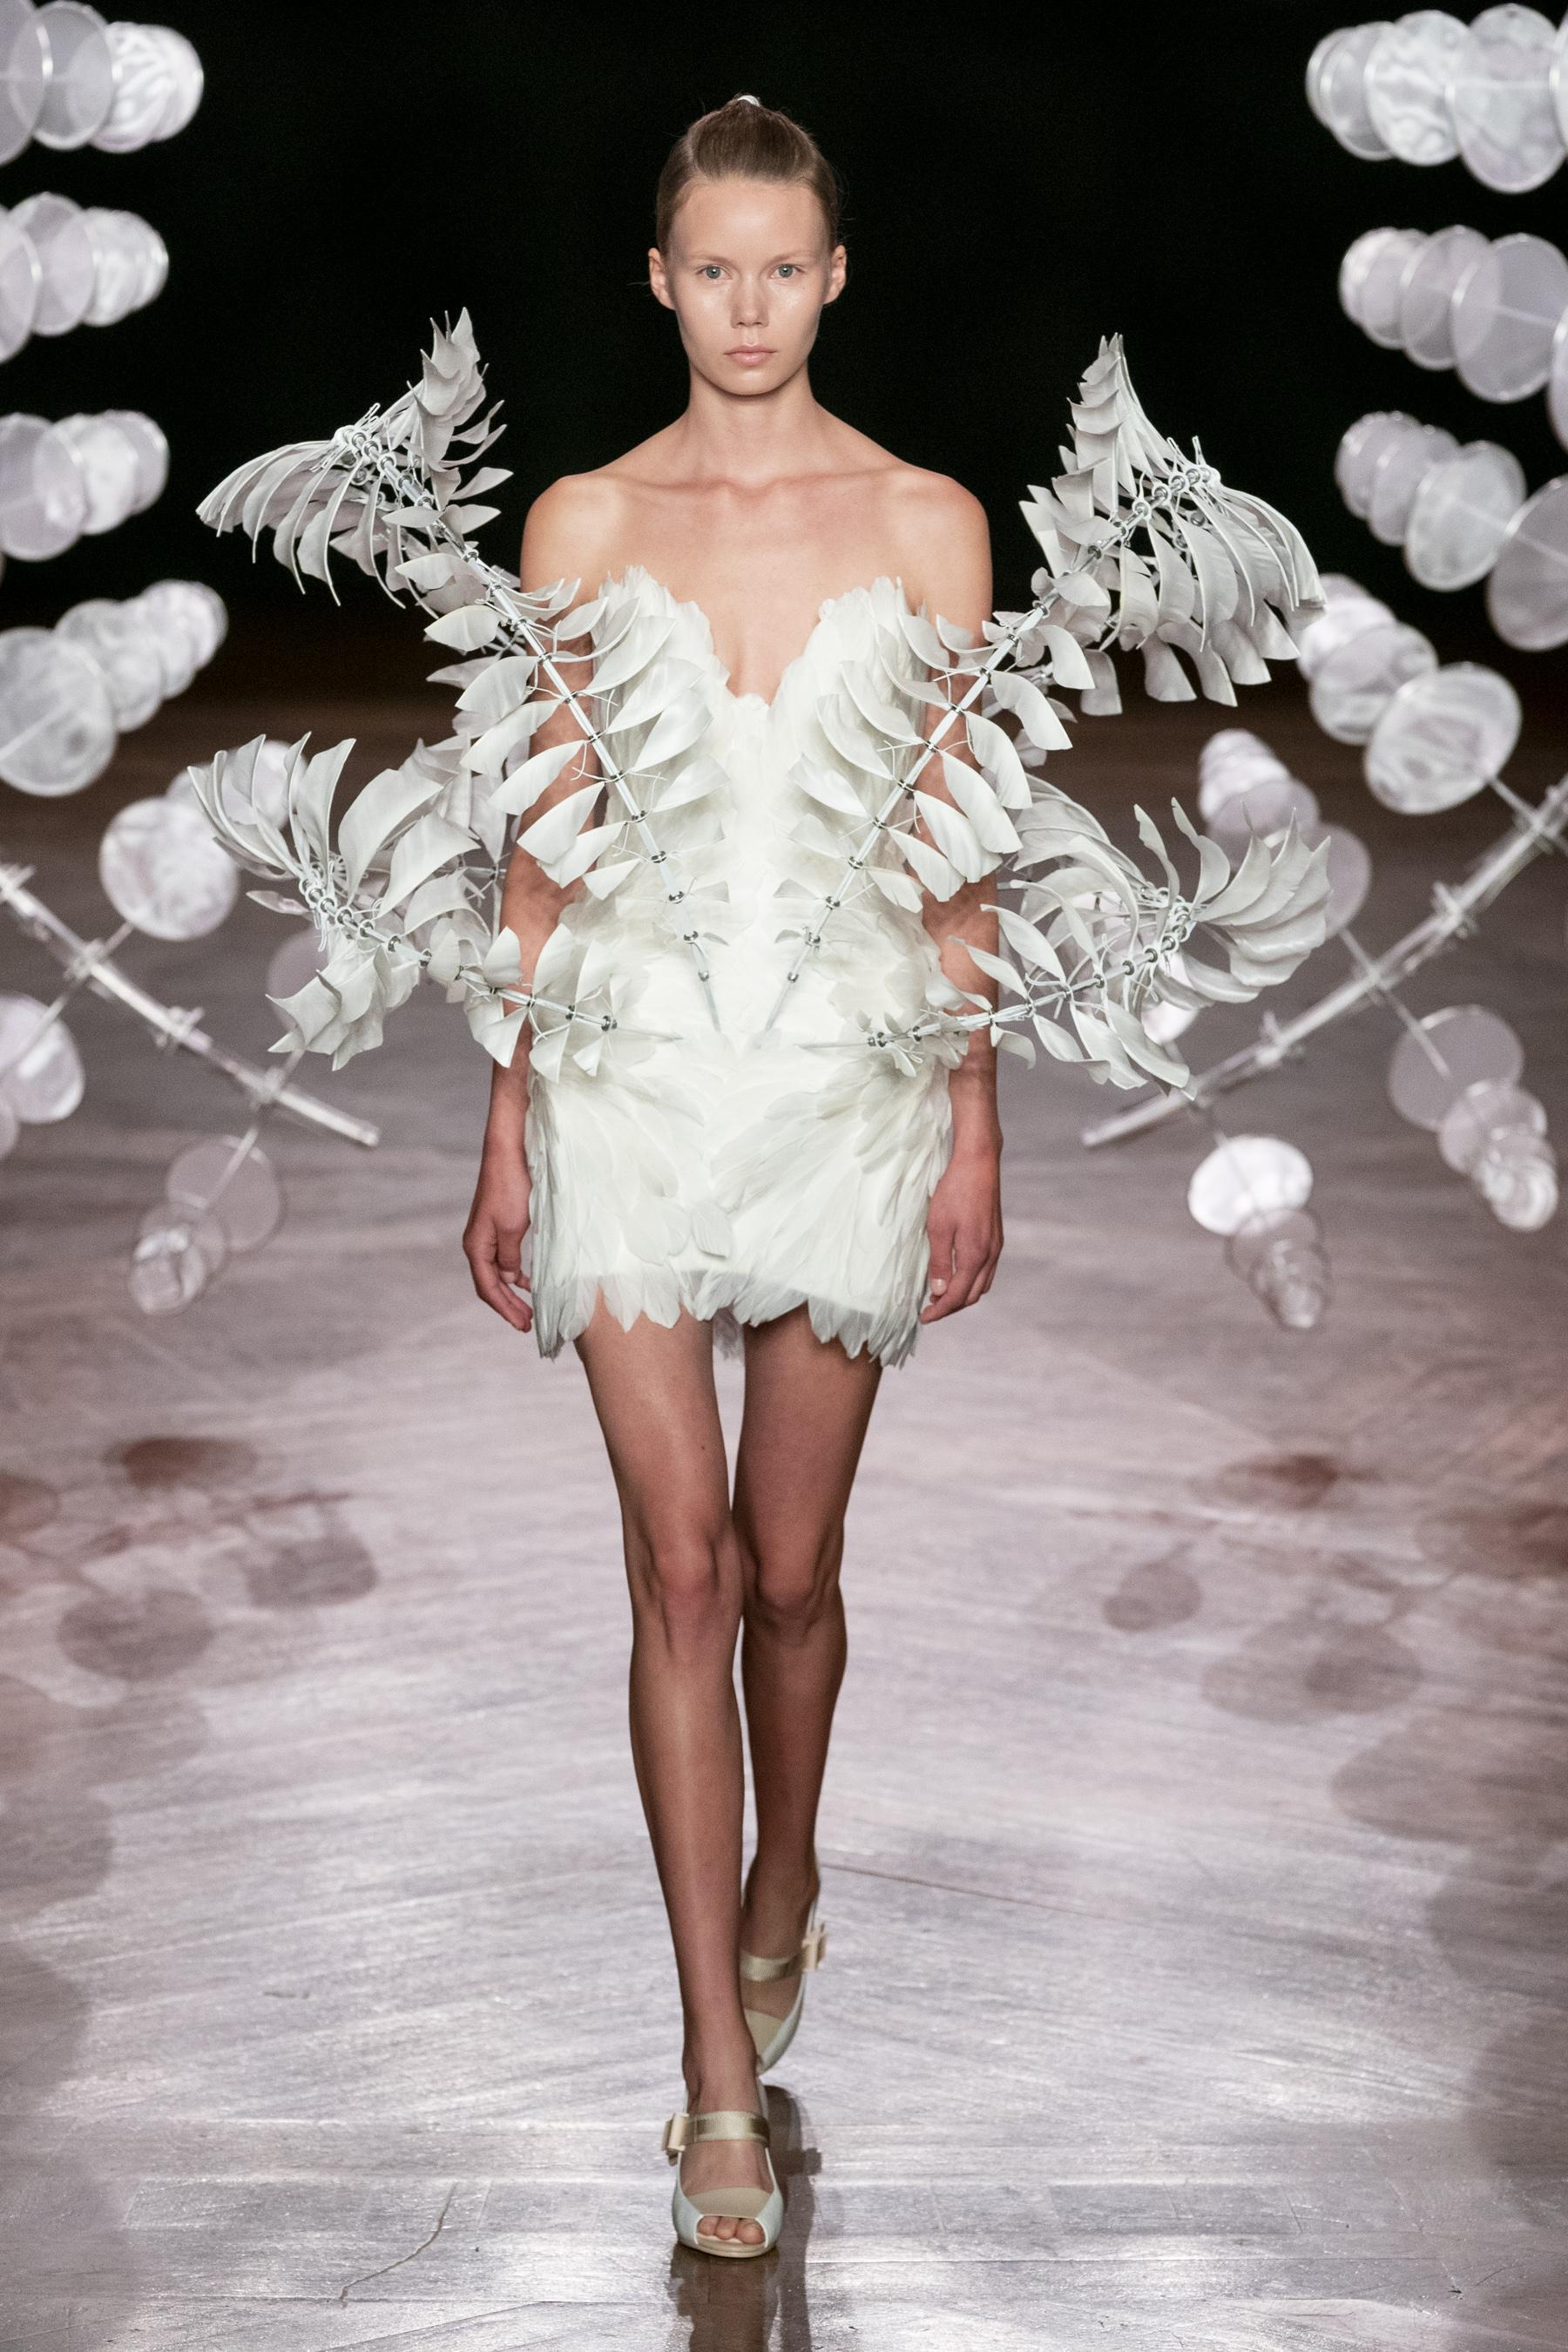 Iris van Herpen's Hypnotic Design New Clothes Blur the Limits of Art, Science and Fashion